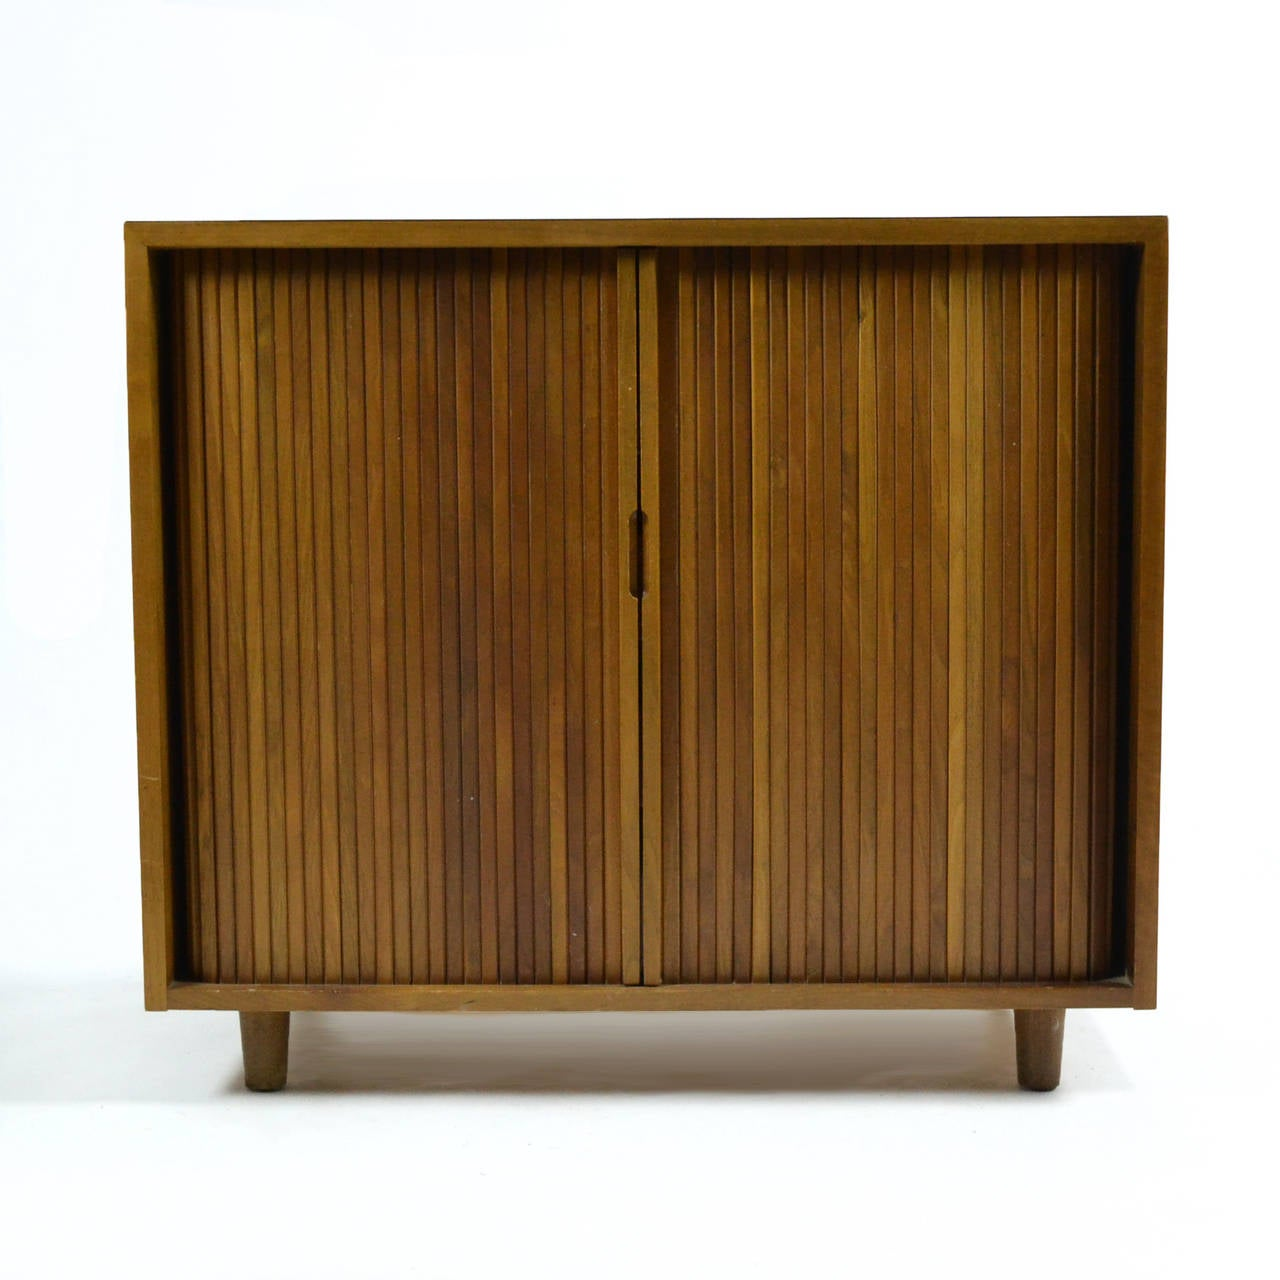 From a series of case goods designed for Glenn of California by Milo Baughman, this handsome walnut chest features two tamboured doors which conceal three drawers with bittersweet red drawer fronts, and a pull-out shelf perfect for folding and